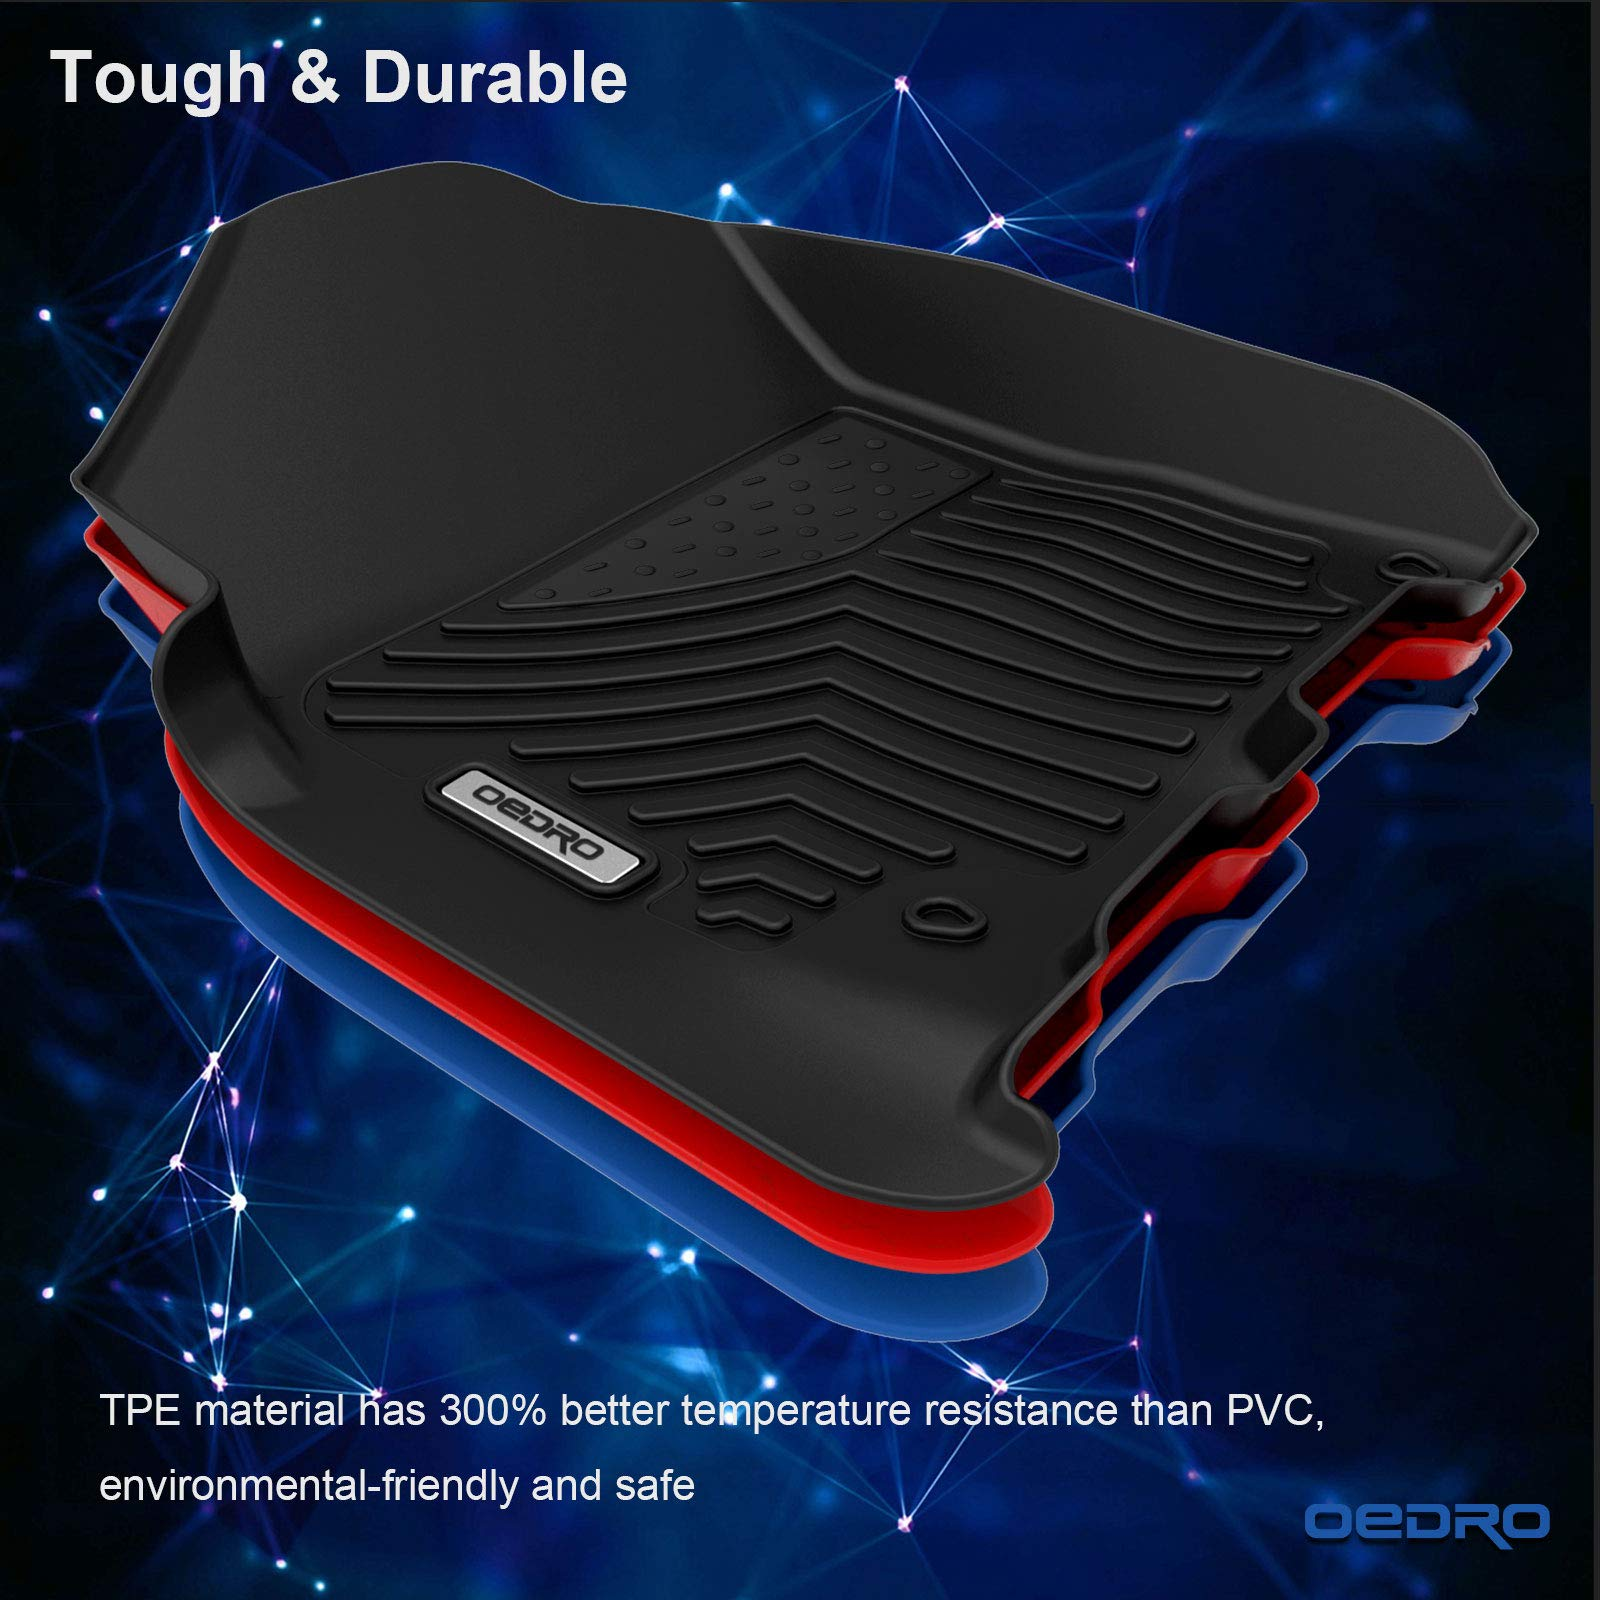 oEdRo Floor Mats Compatible for 2012-2018 Dodge Ram 1500/2500/3500 Crew Cab, Unique Black TPE All-Weather Guard Includes 1st and 2nd Row: Front, Rear, Full Set Liners by oEdRo (Image #2)